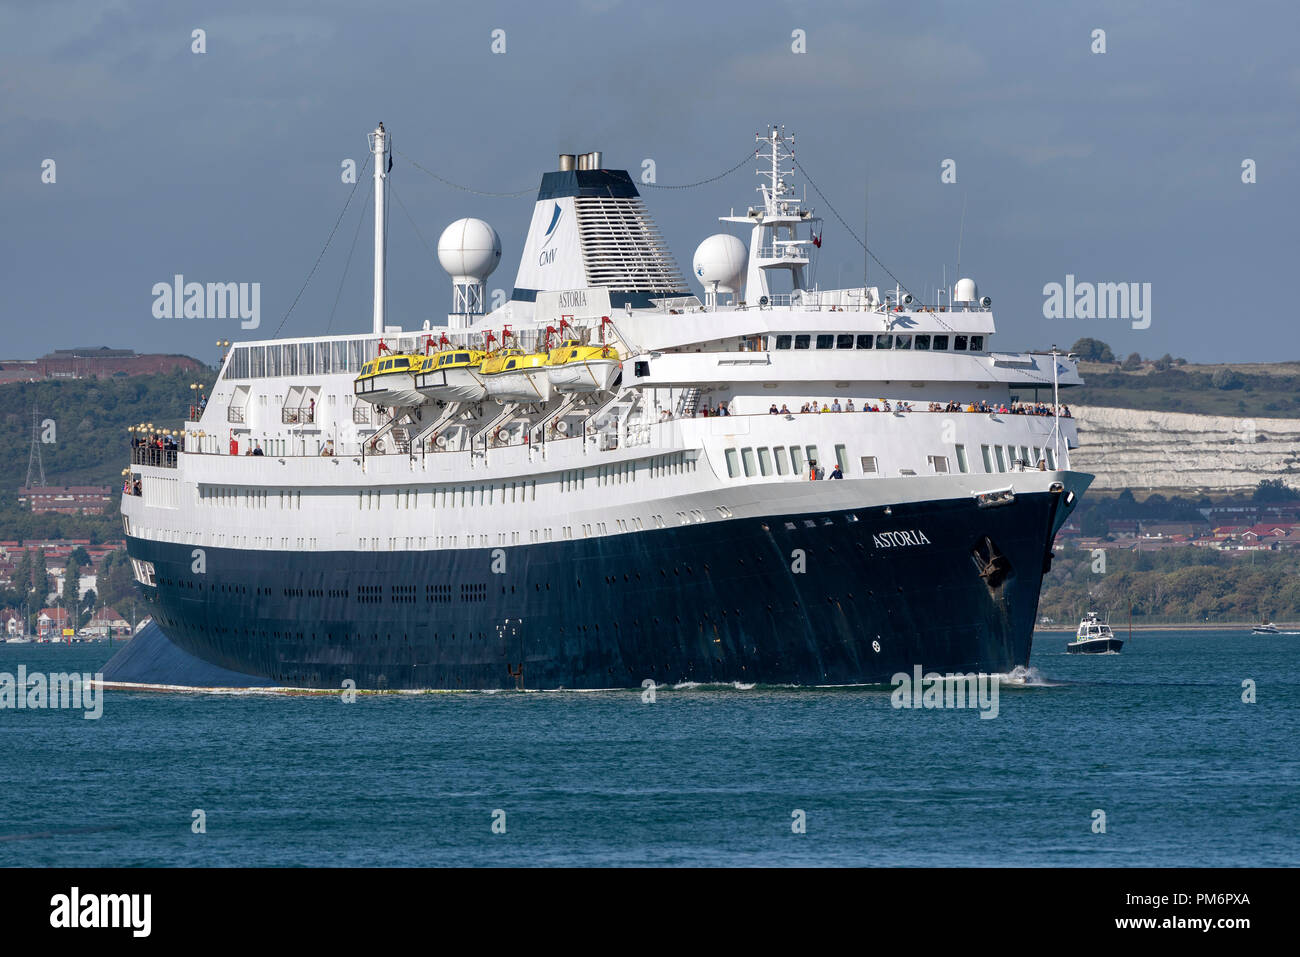 MV Astoria departing Portsmouth England UK. Came into service in 1946 and is the second oldest cruise ship in service. Stock Photo